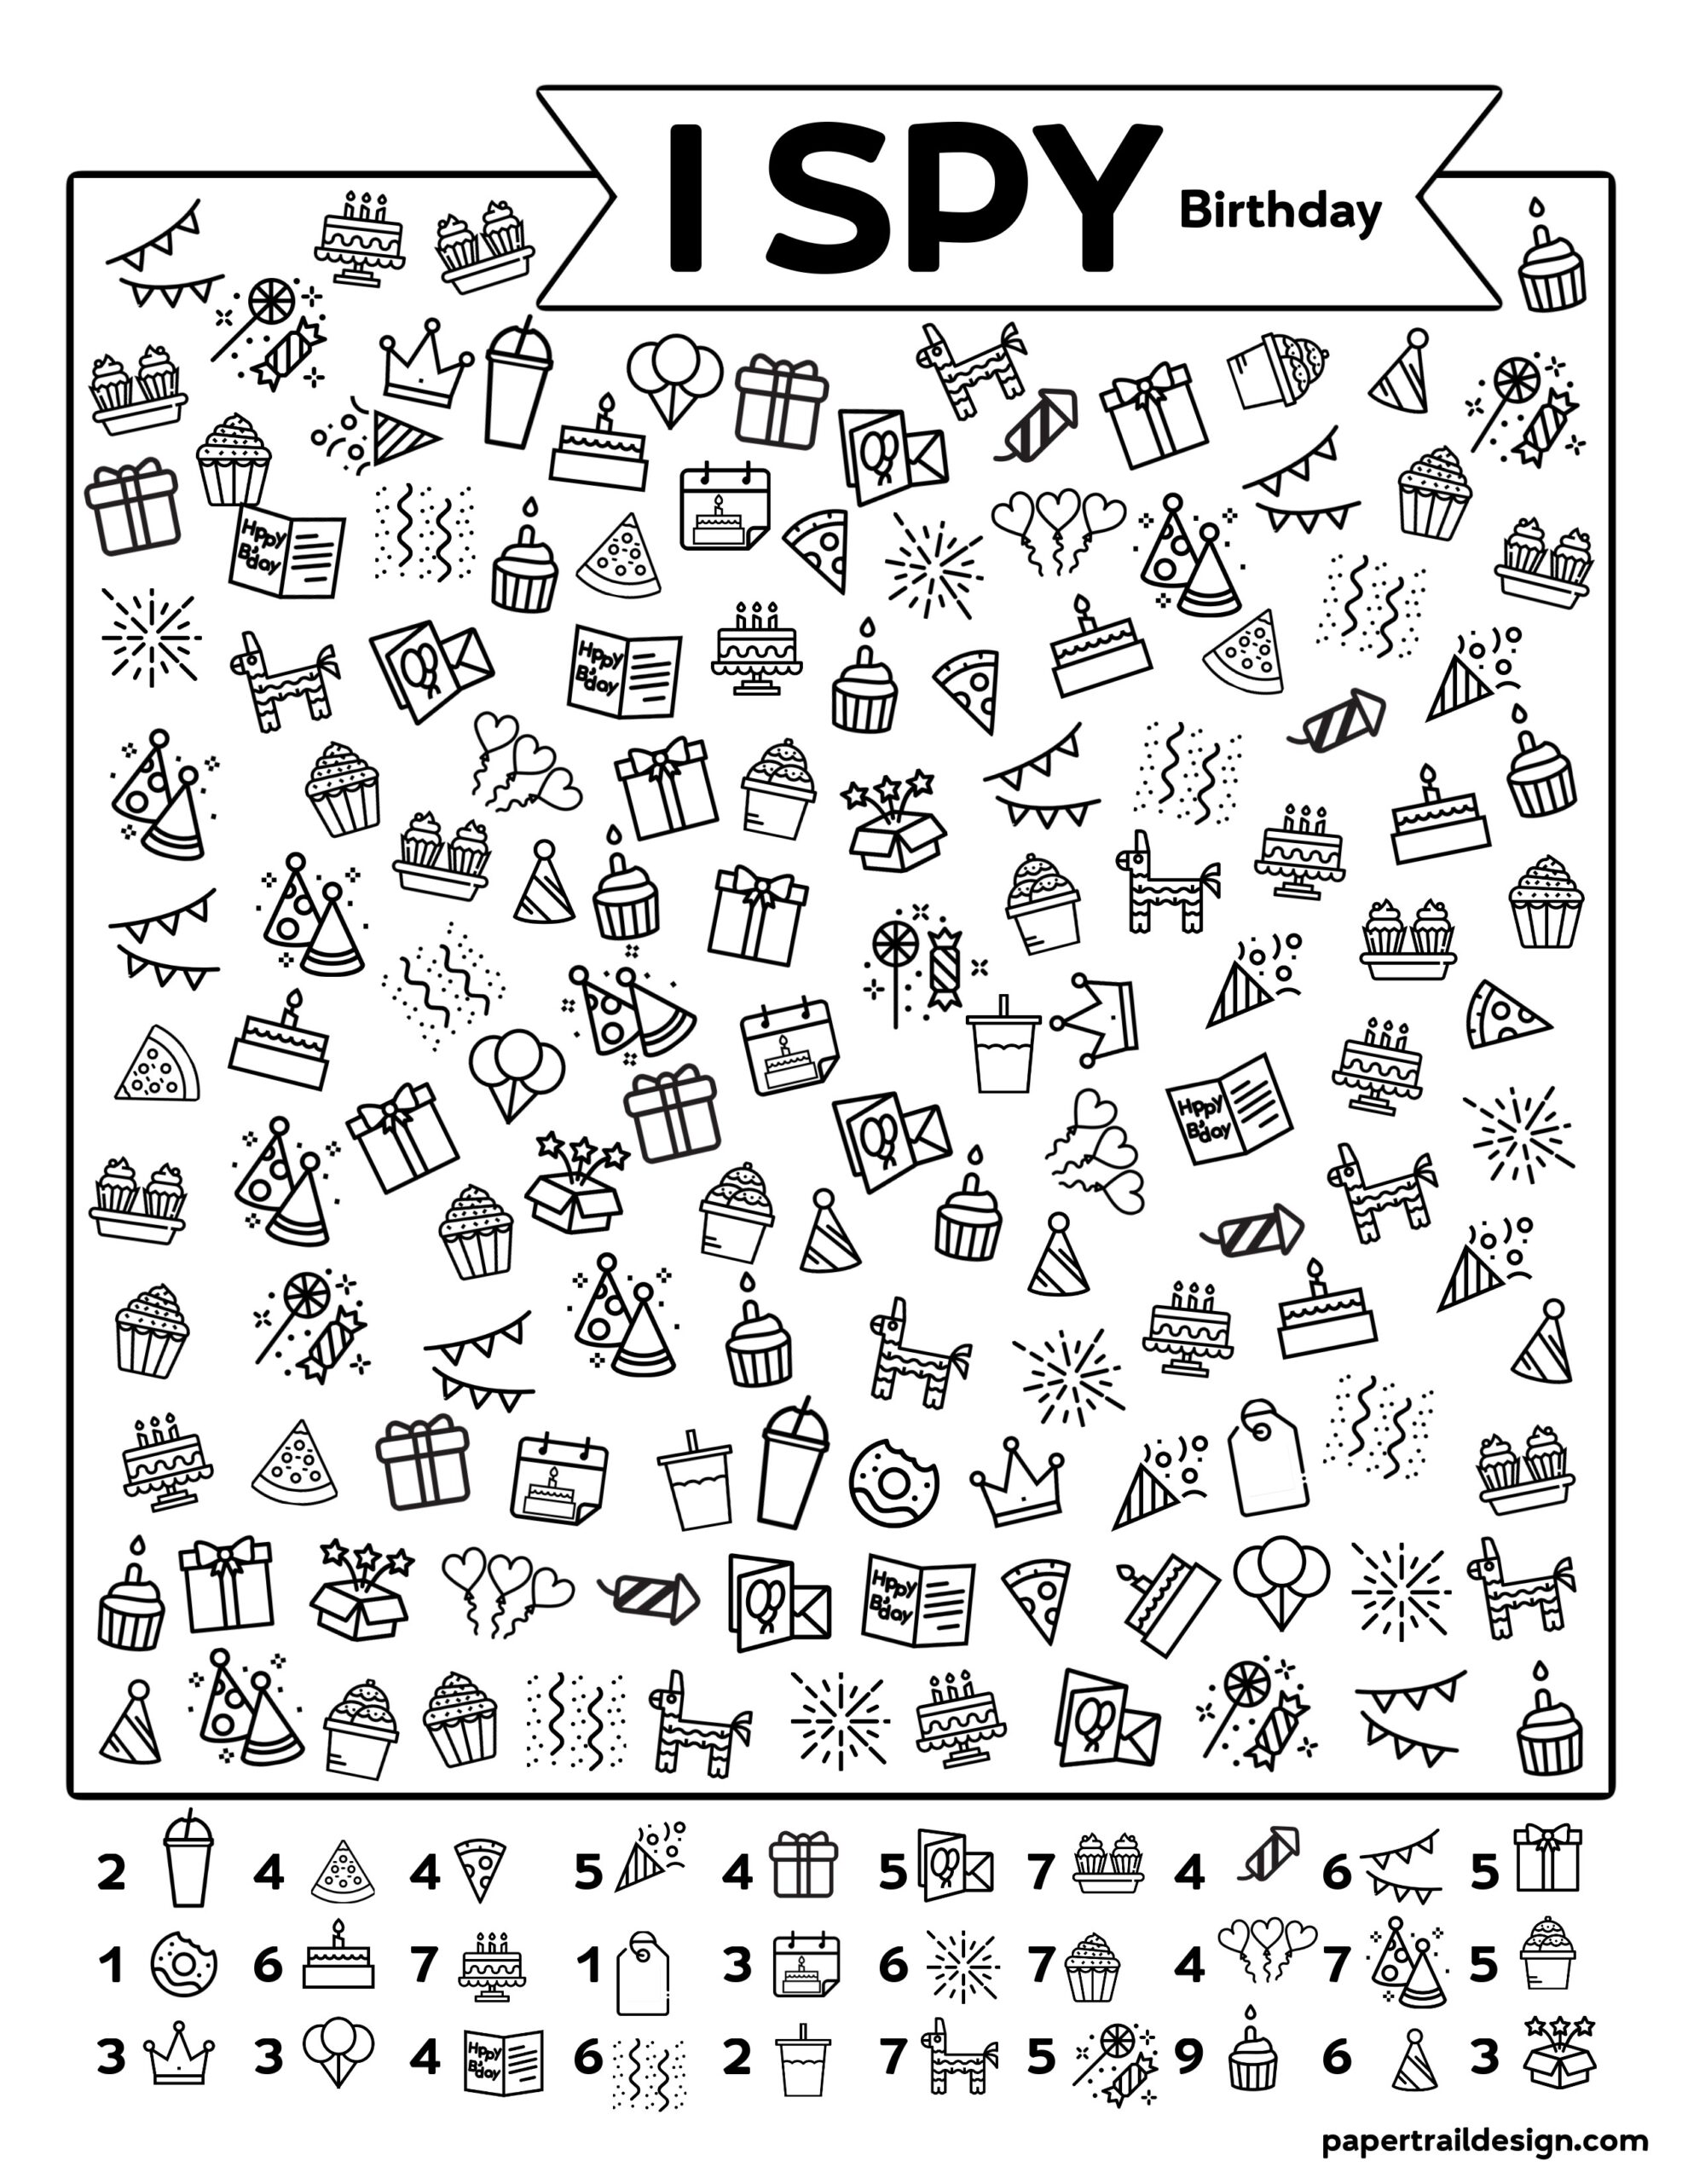 Free Printable I Spy Birthday Activity